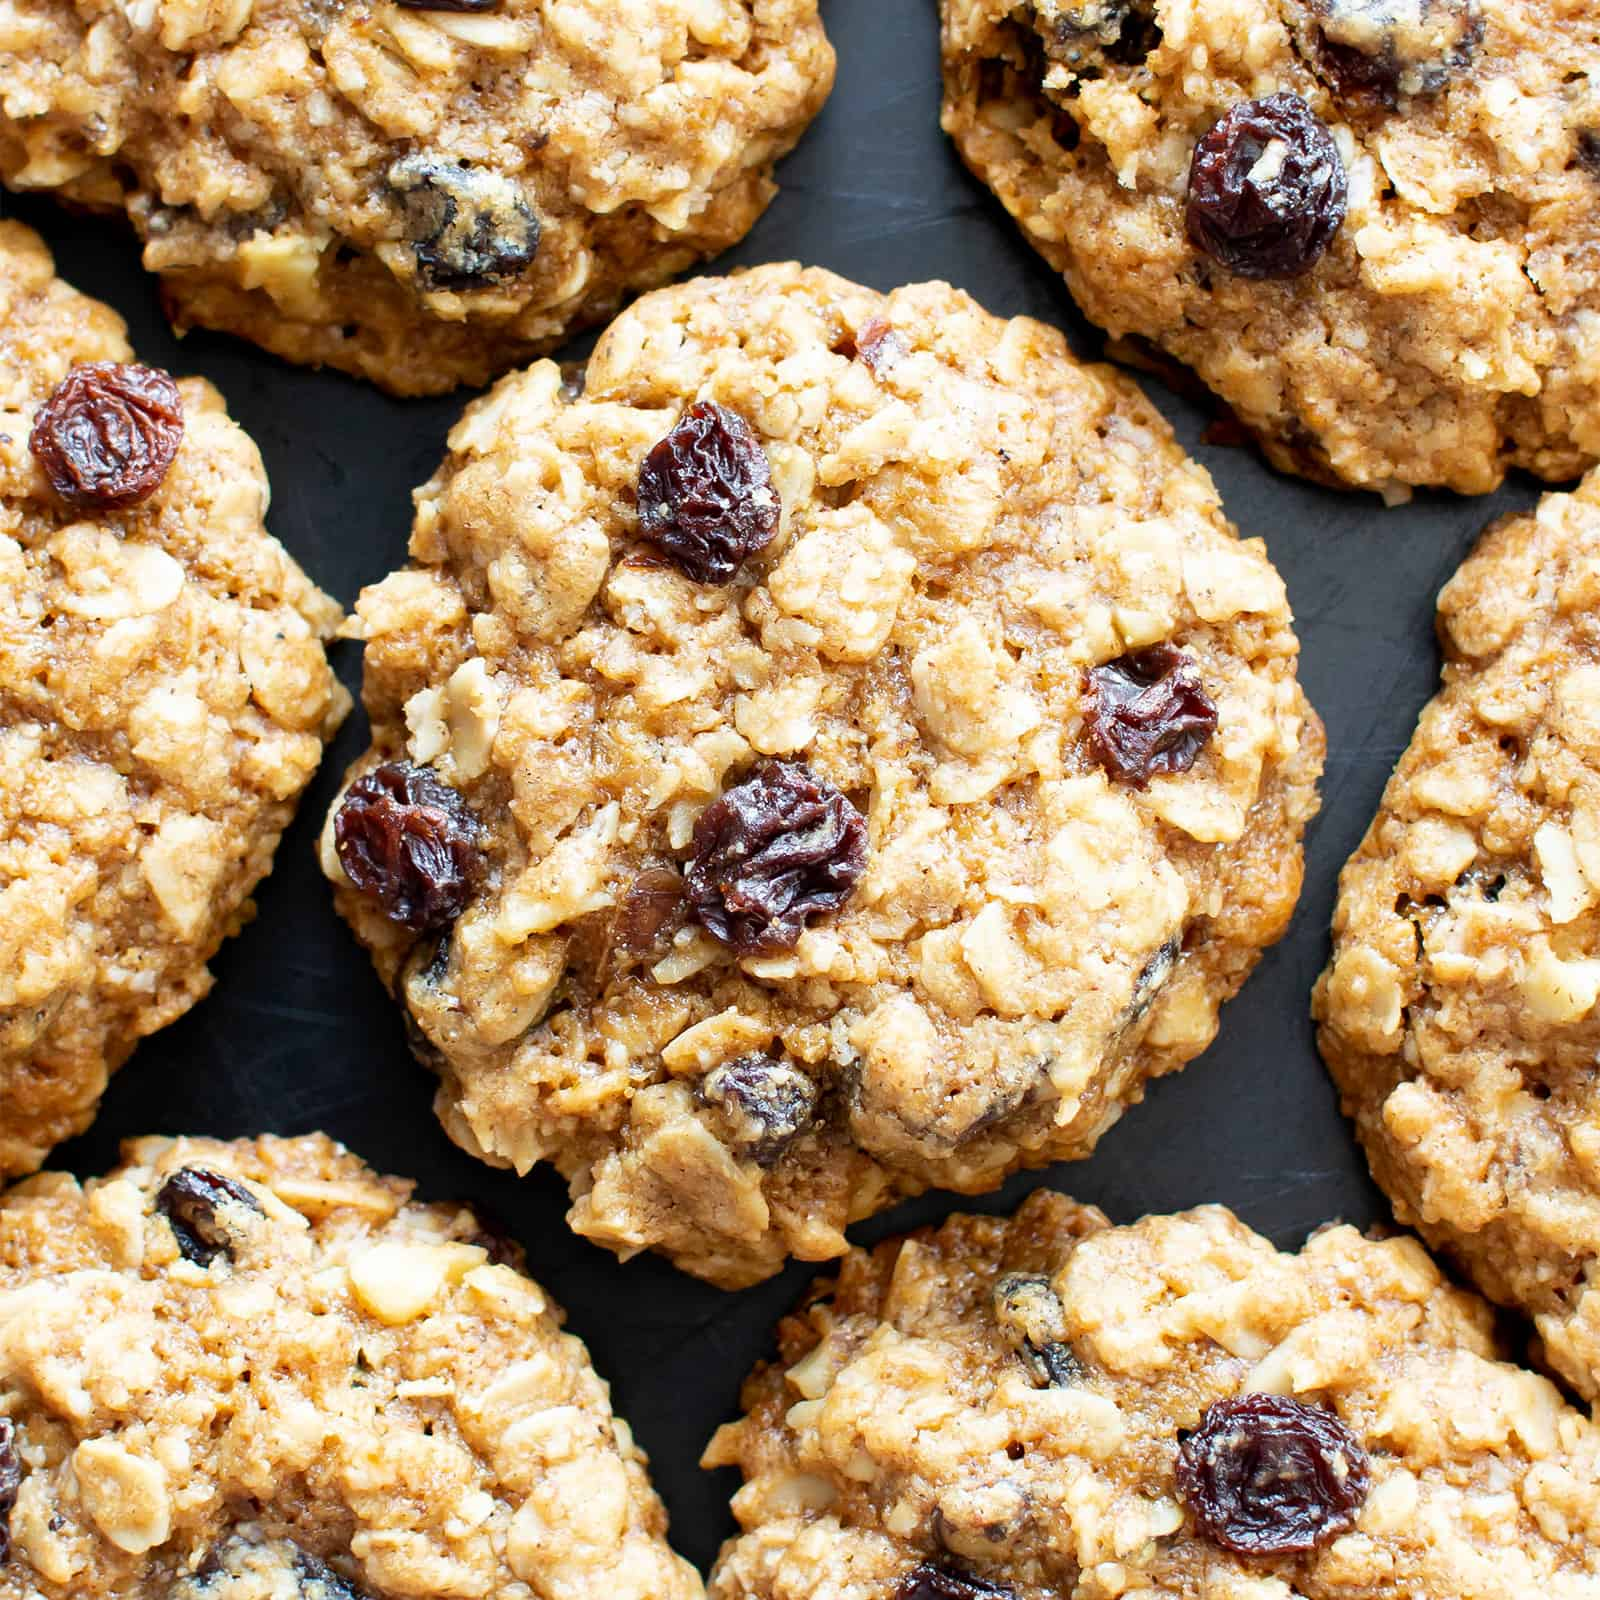 The BEST Vegan Gluten Free Cookies, all in one place! Find vegan gluten free oatmeal cookies, vegan gluten free chocolate chip cookies, V+GF peanut butter cookies, cookie dough, oatmeal raisin and more! #VeganGlutenFree #VeganCookies #GlutenFreeVegan #GlutenFreeCookies   Recipes at BeamingBaker.com